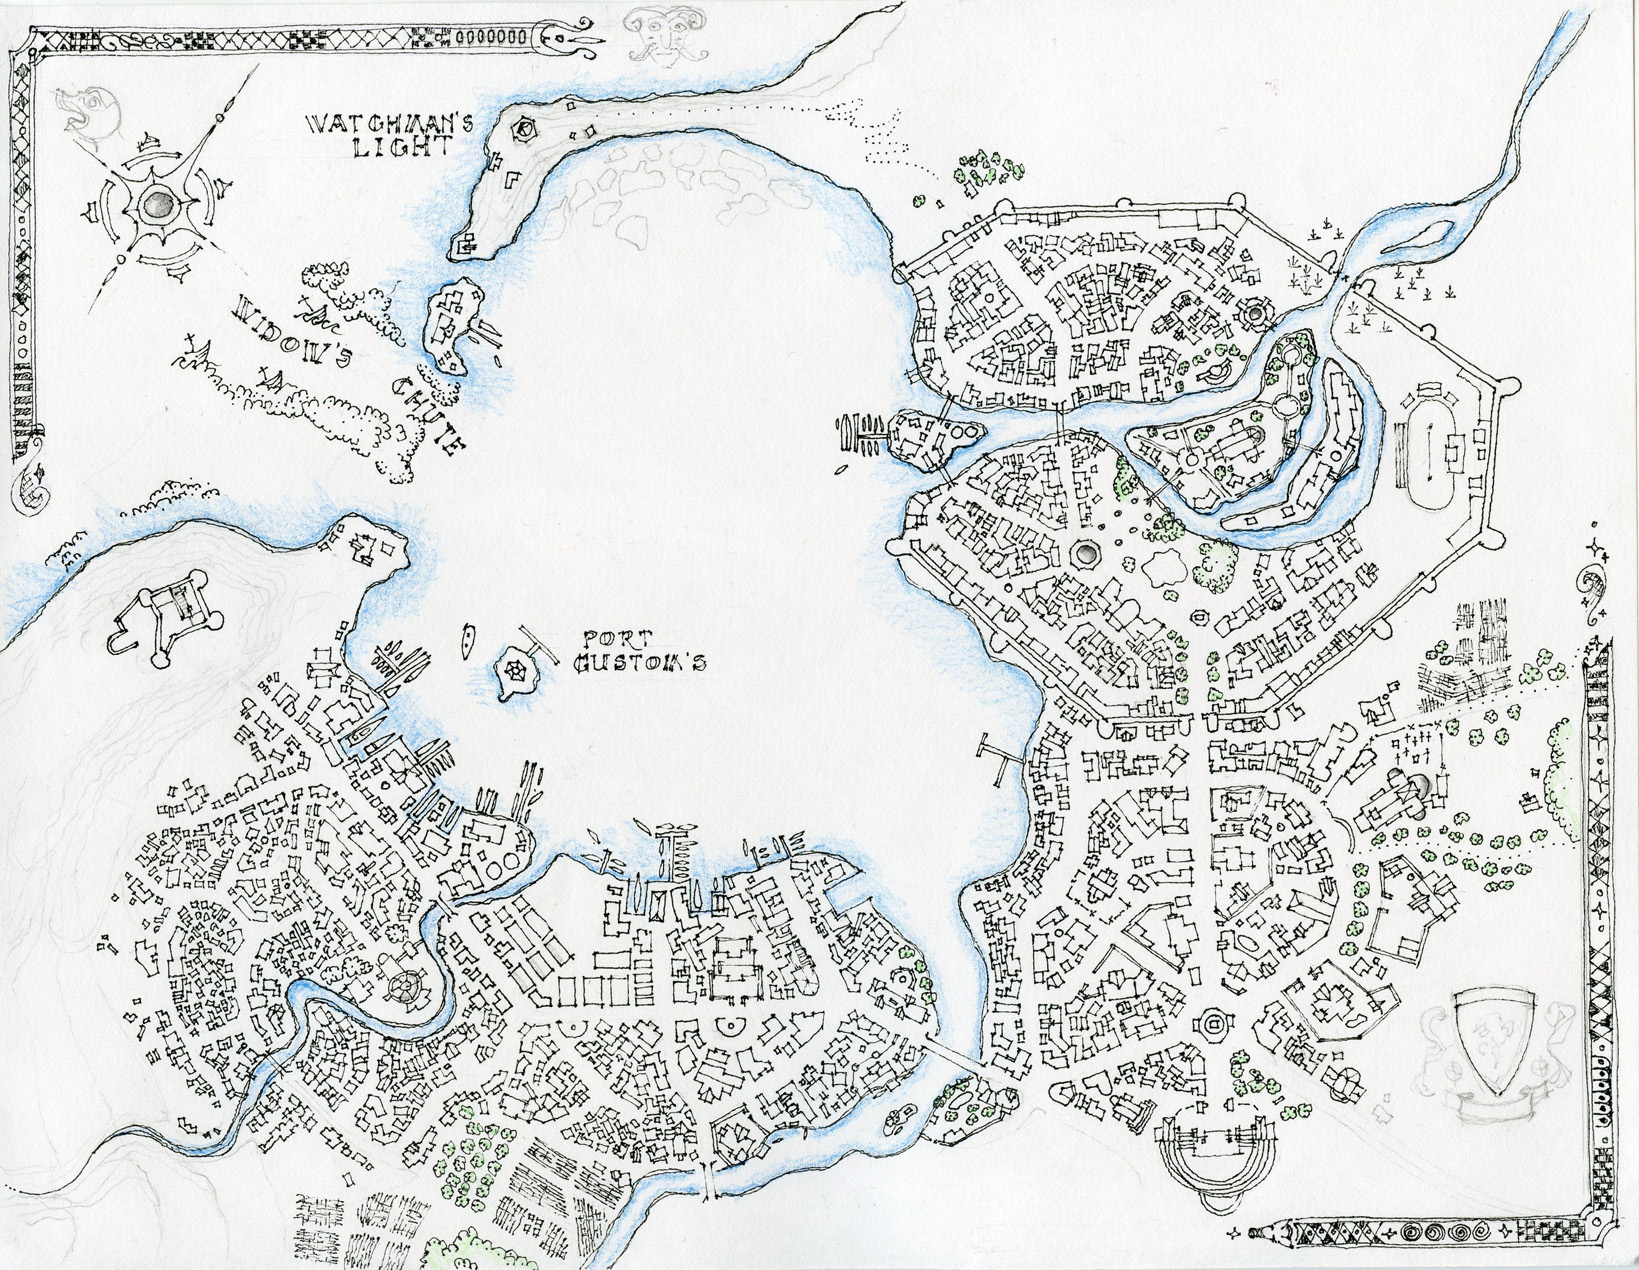 harbor 3ahttp://www.cartographersguild.com/album.php?albumid=4028&attachmentid=51572